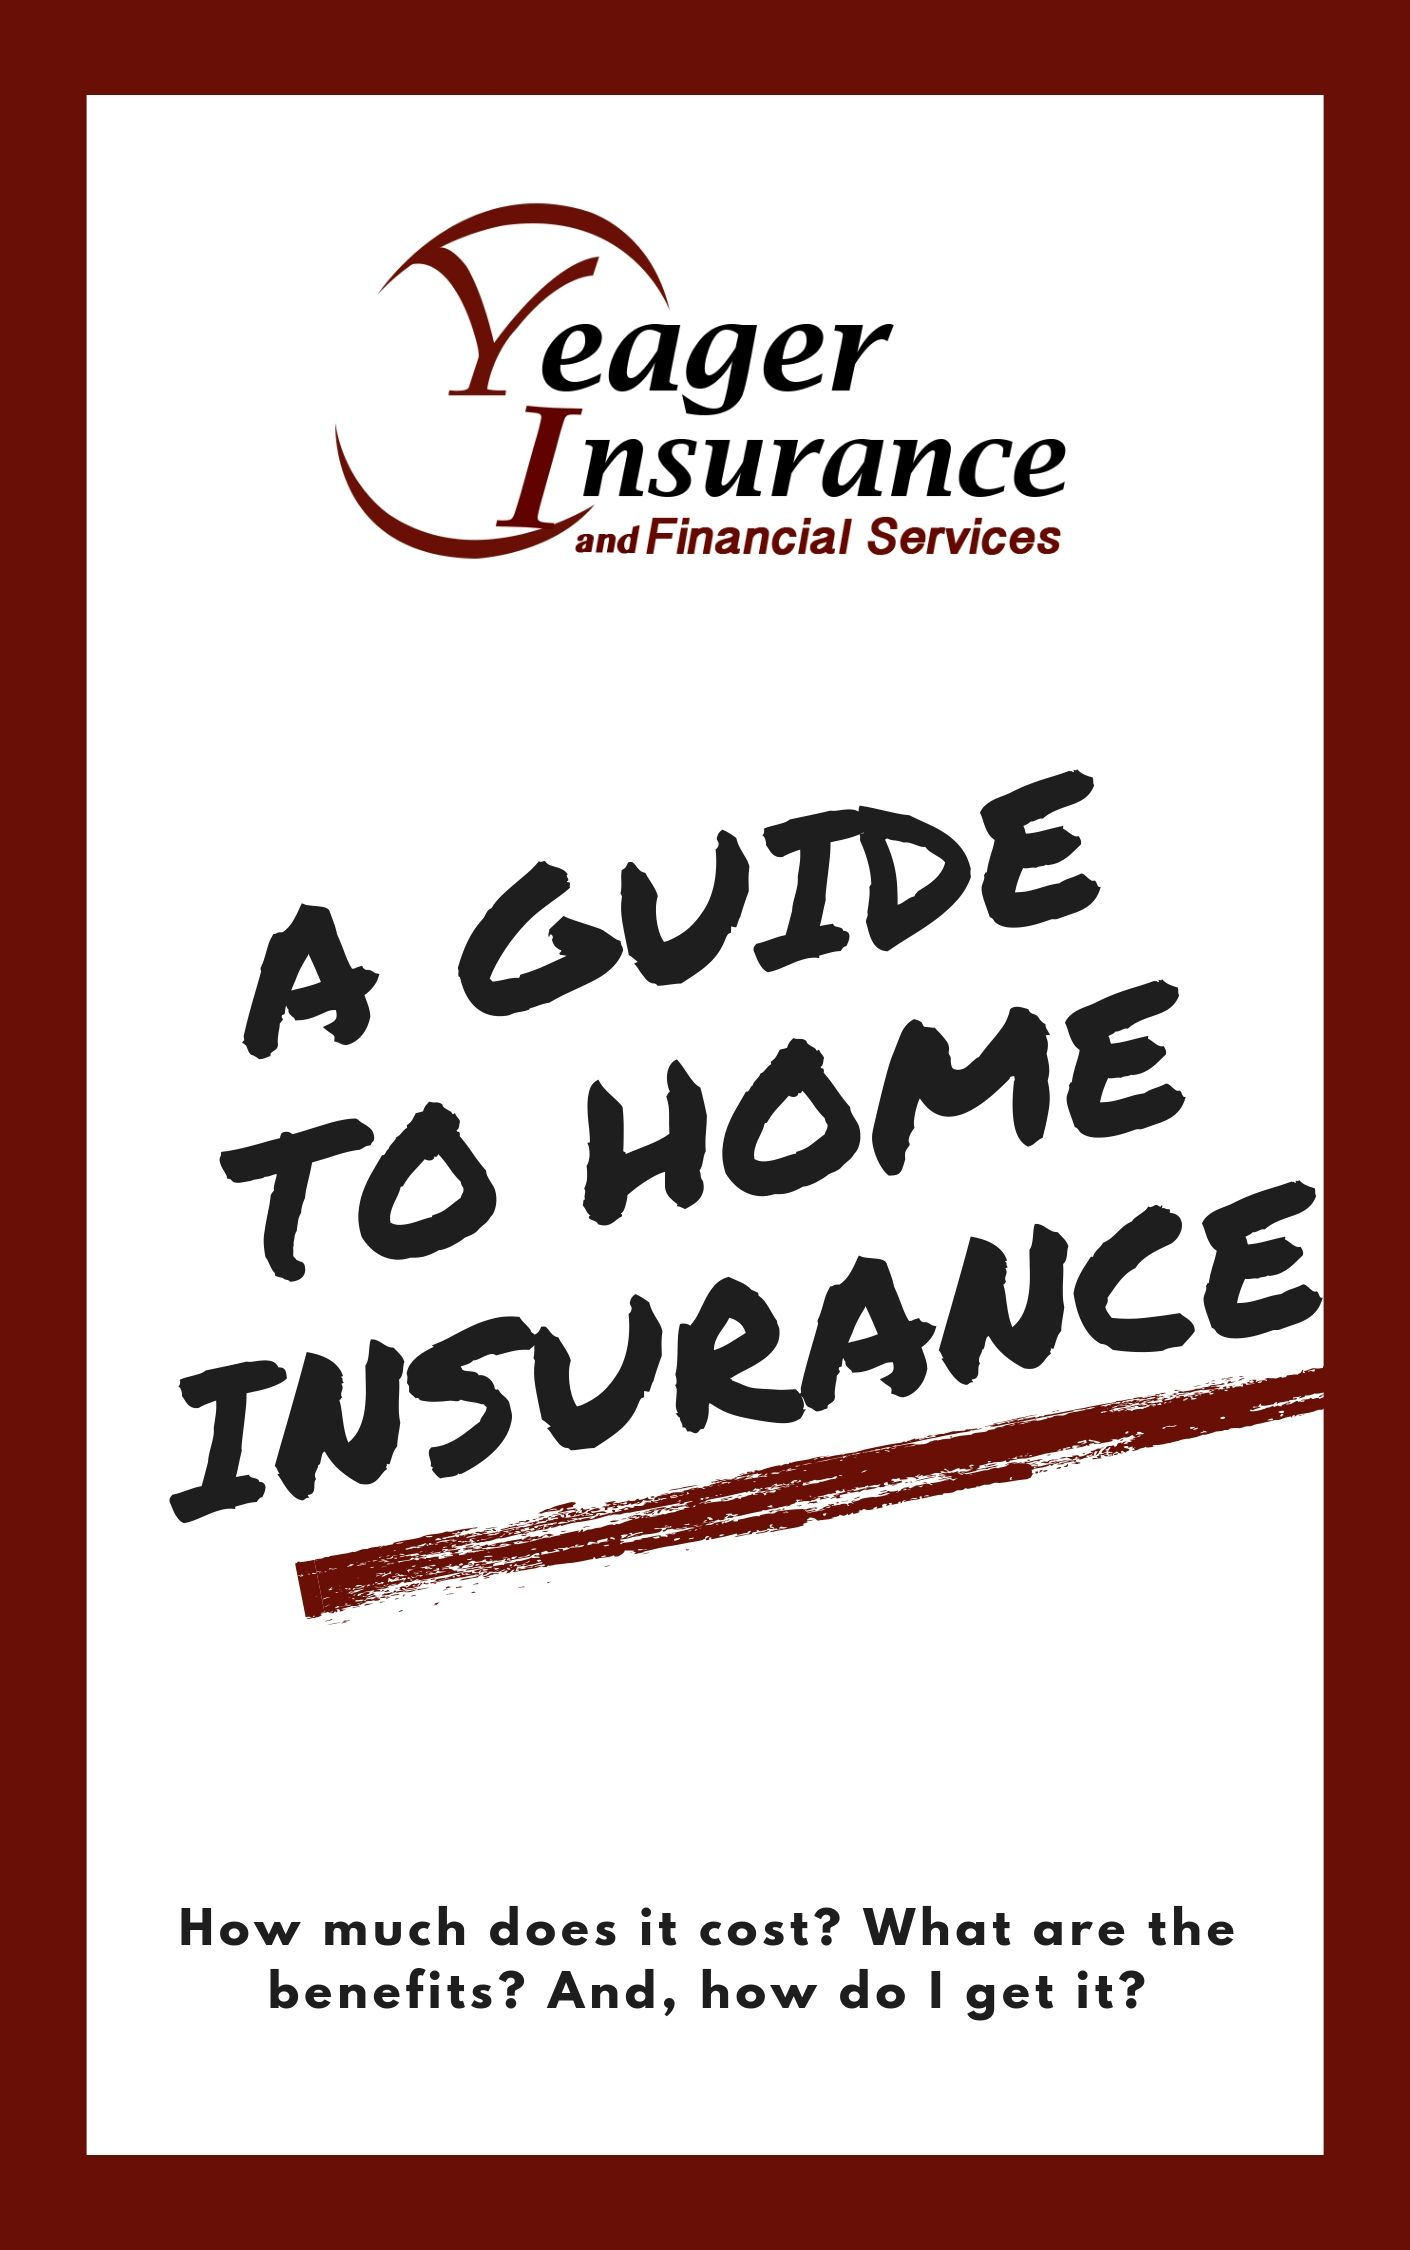 Yeager eBook_ A Guide to Home Insurance.jpg